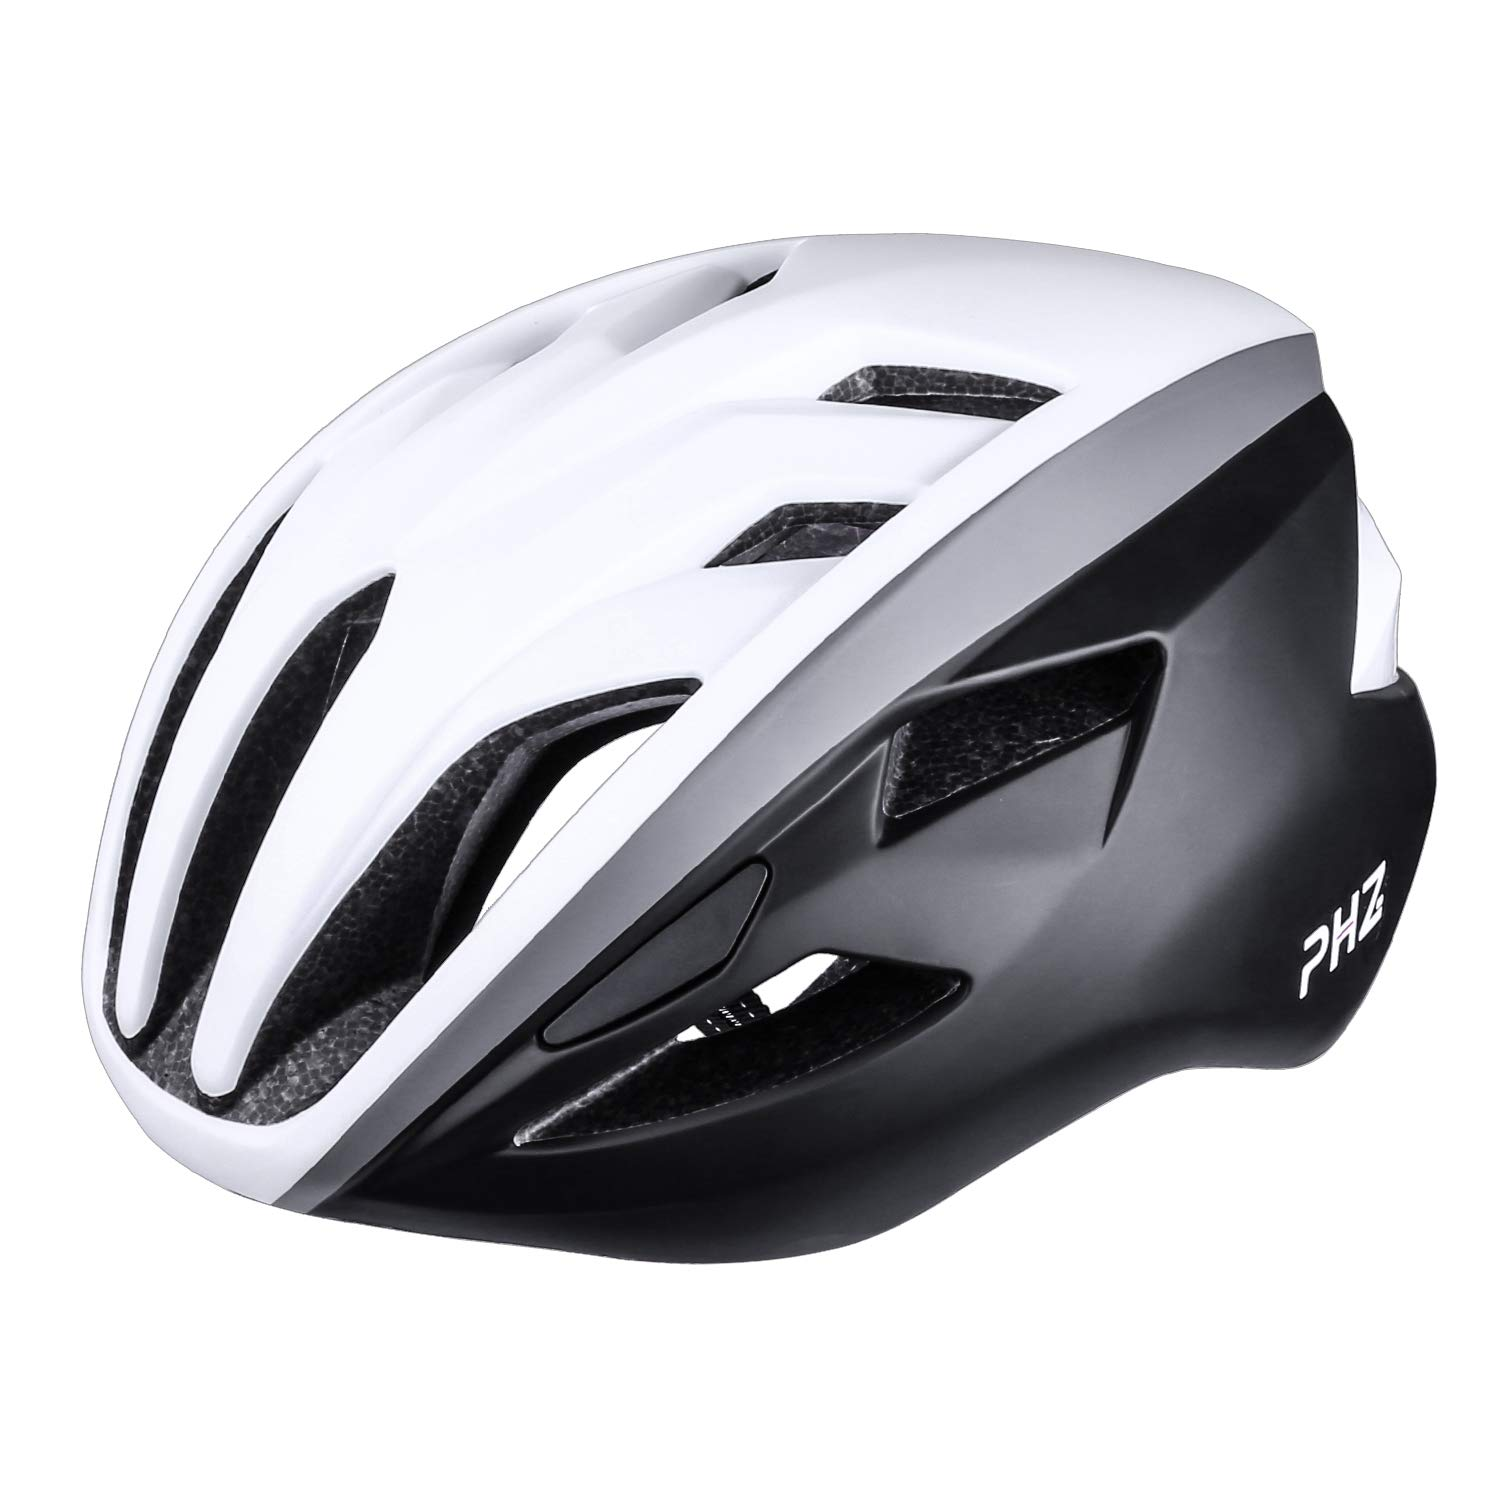 PHZ. Adult Bike Helmet CPSC Certified with Adjustable System Ideal for Bicycle Road Bike BMX Riding for Unisex Adult